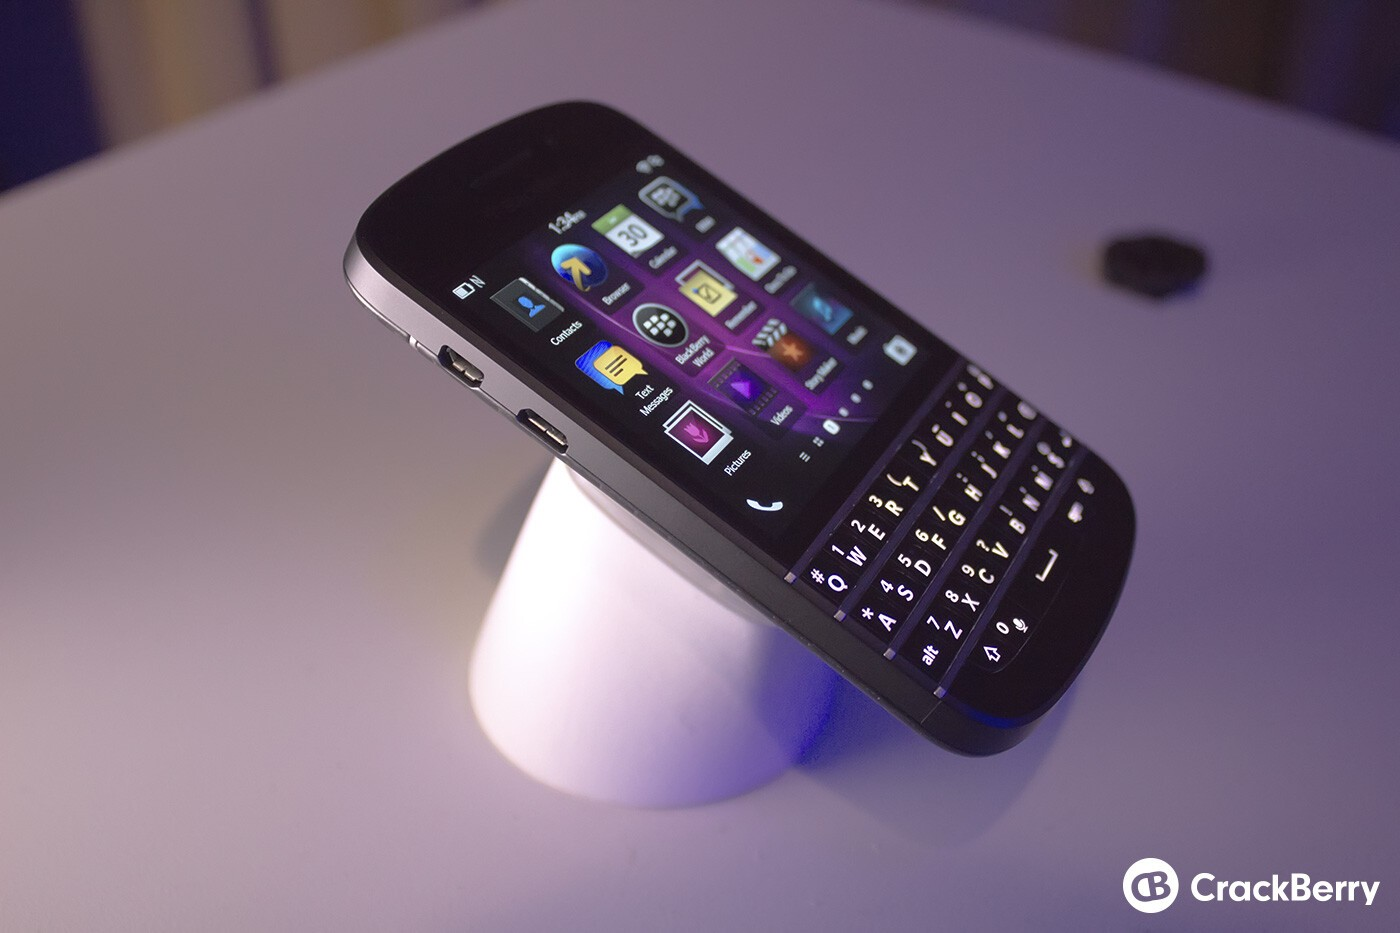 Five reasons why the BlackBerry Q10's battery life will be Mind